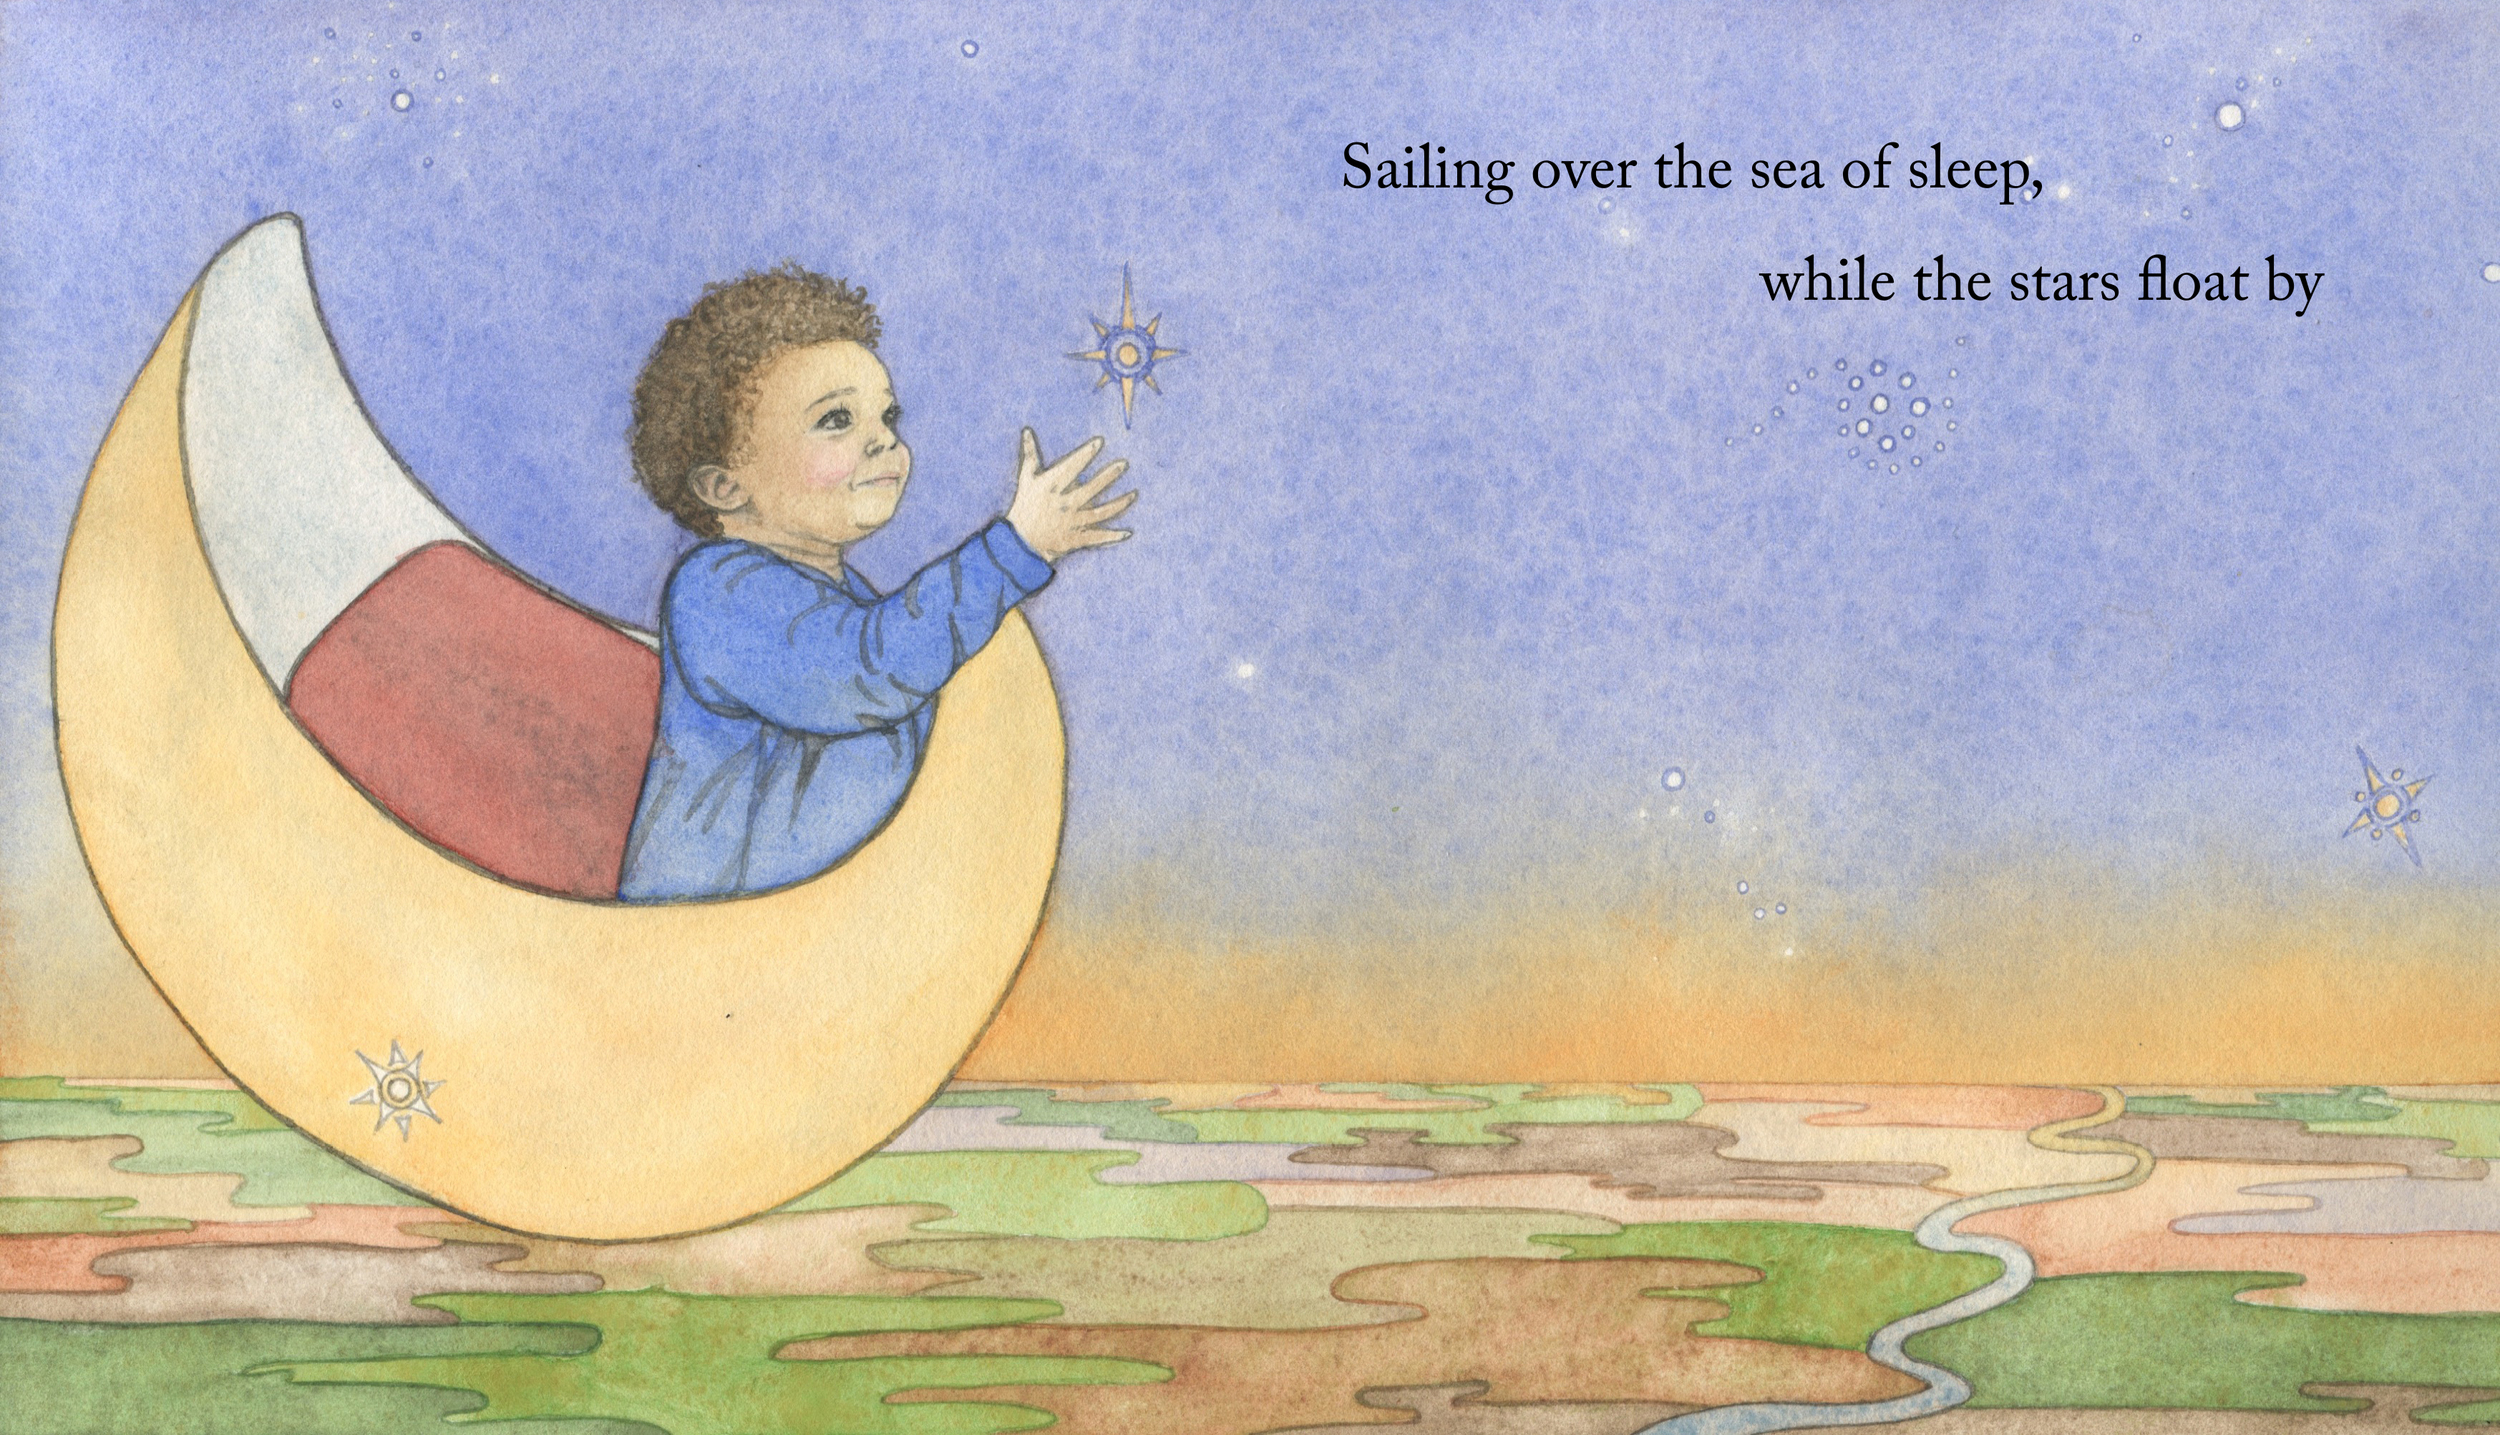 Children's Book: While the Stars Float By